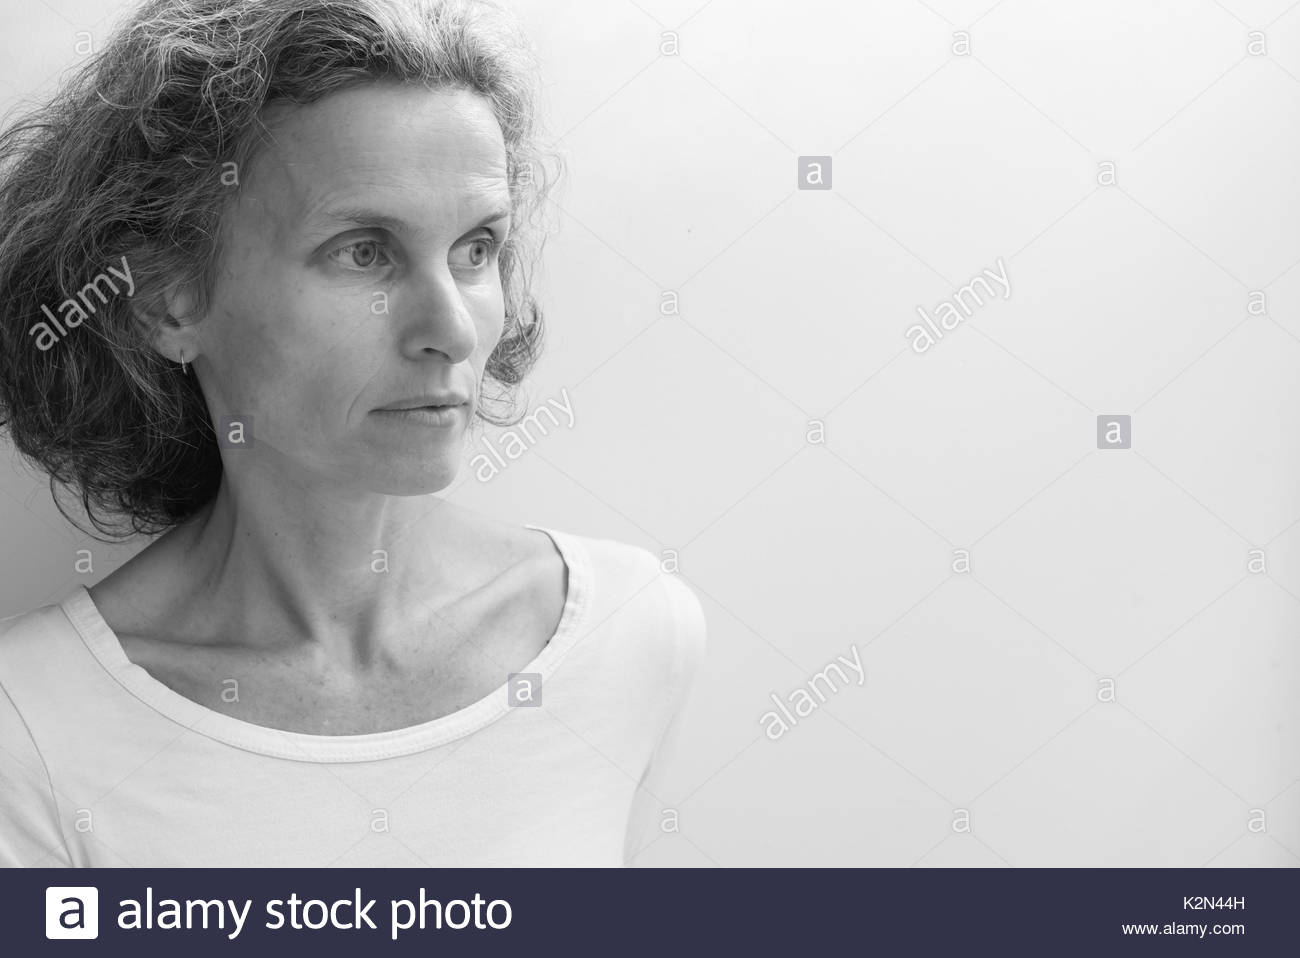 Profile view of natural looking middle aged woman in white top against neutral background with copy space to right (black and white, selective focus) - Stock Image